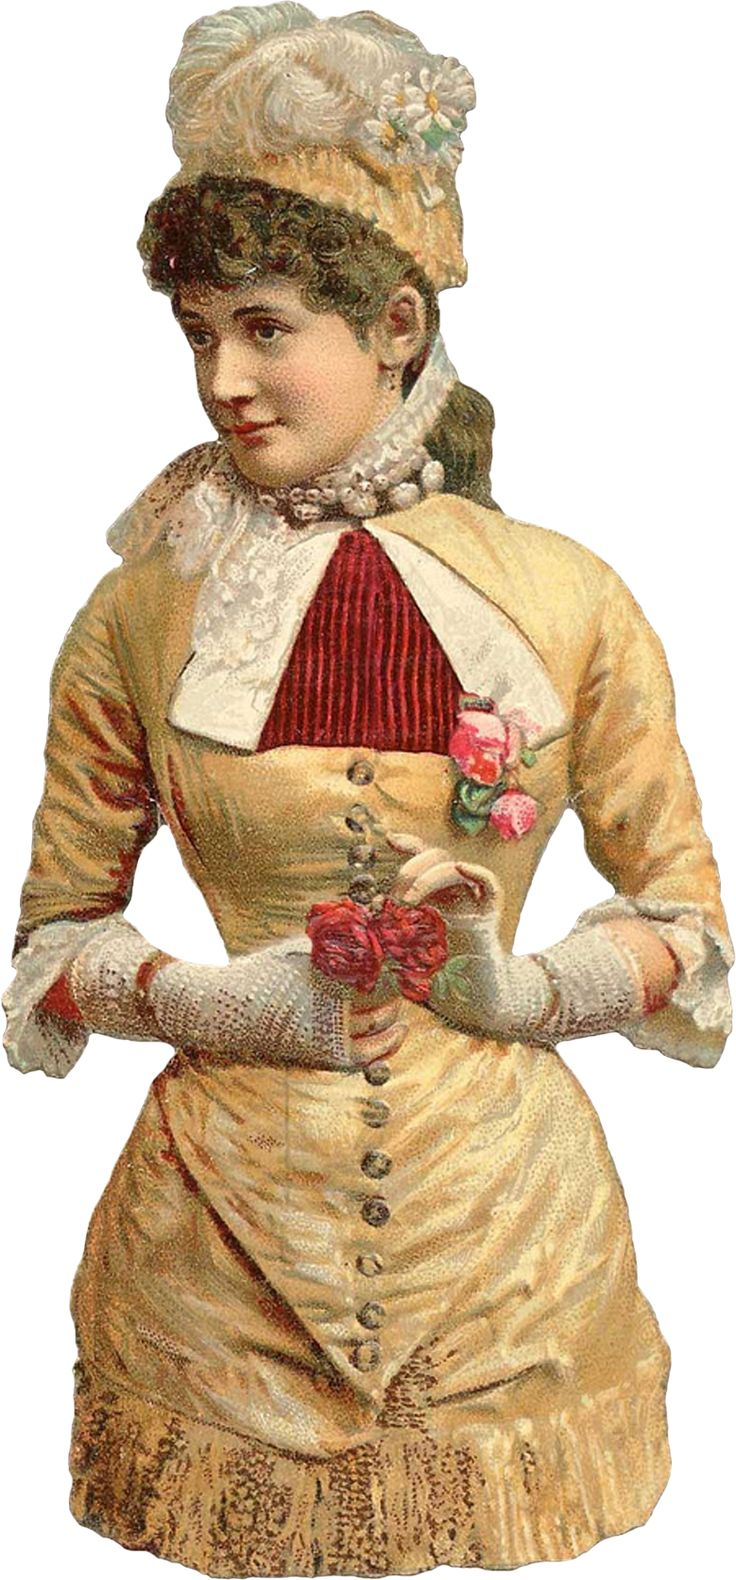 Wings of Whimsy: Victorian Scaps - Glove Lady 2